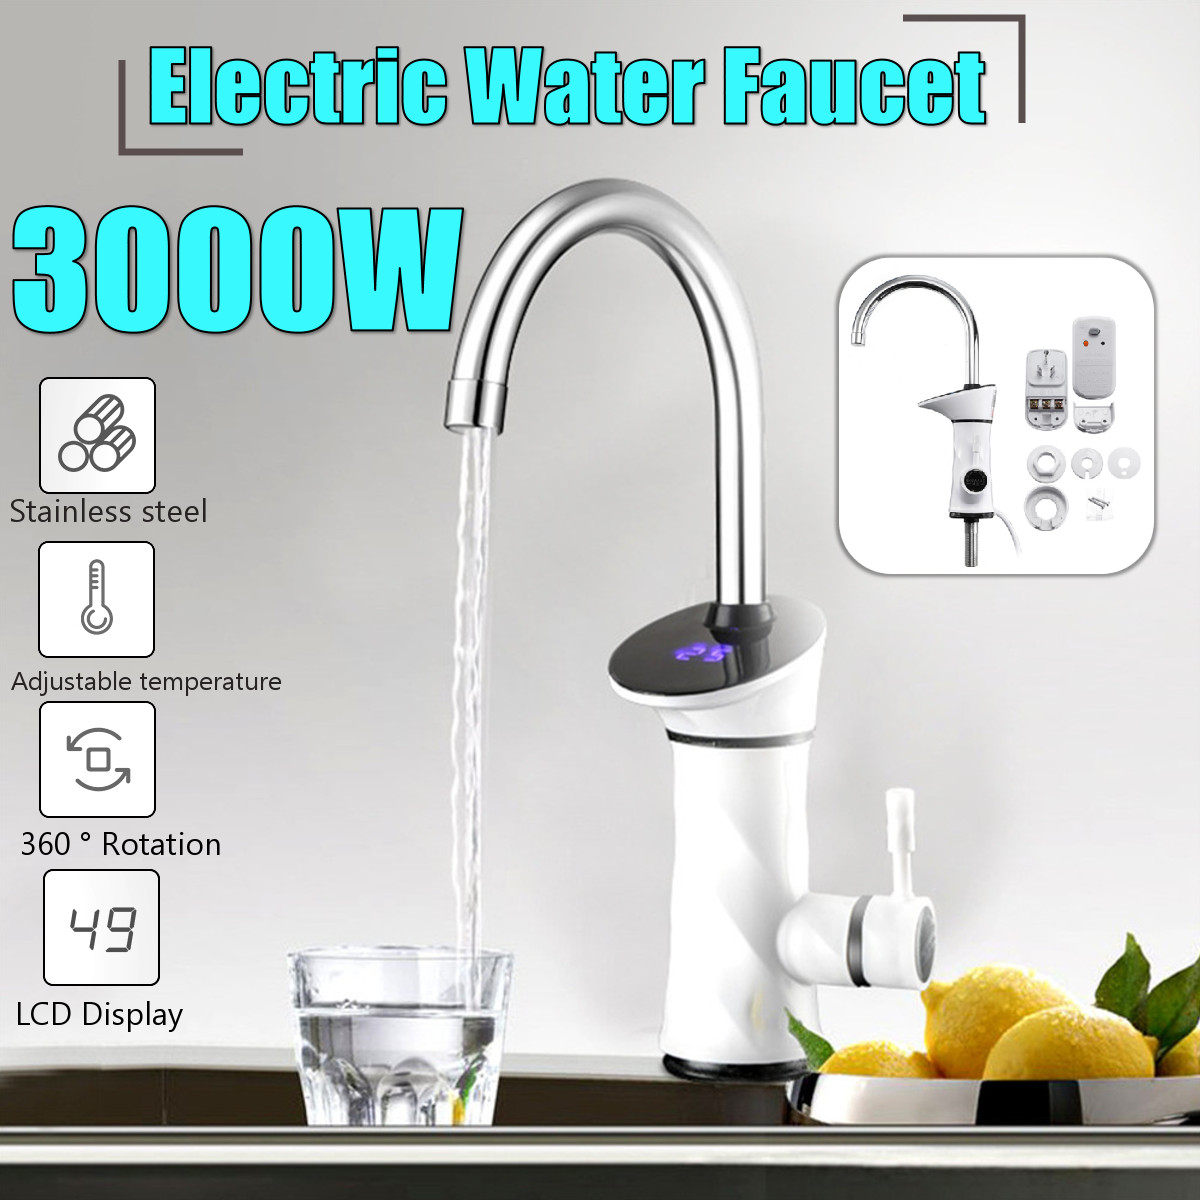 360 Degree Rotation 3000W Intelligent Automatic Instant Electric Water Heating Faucet Kitchen Water Heater Tap With LCD Display